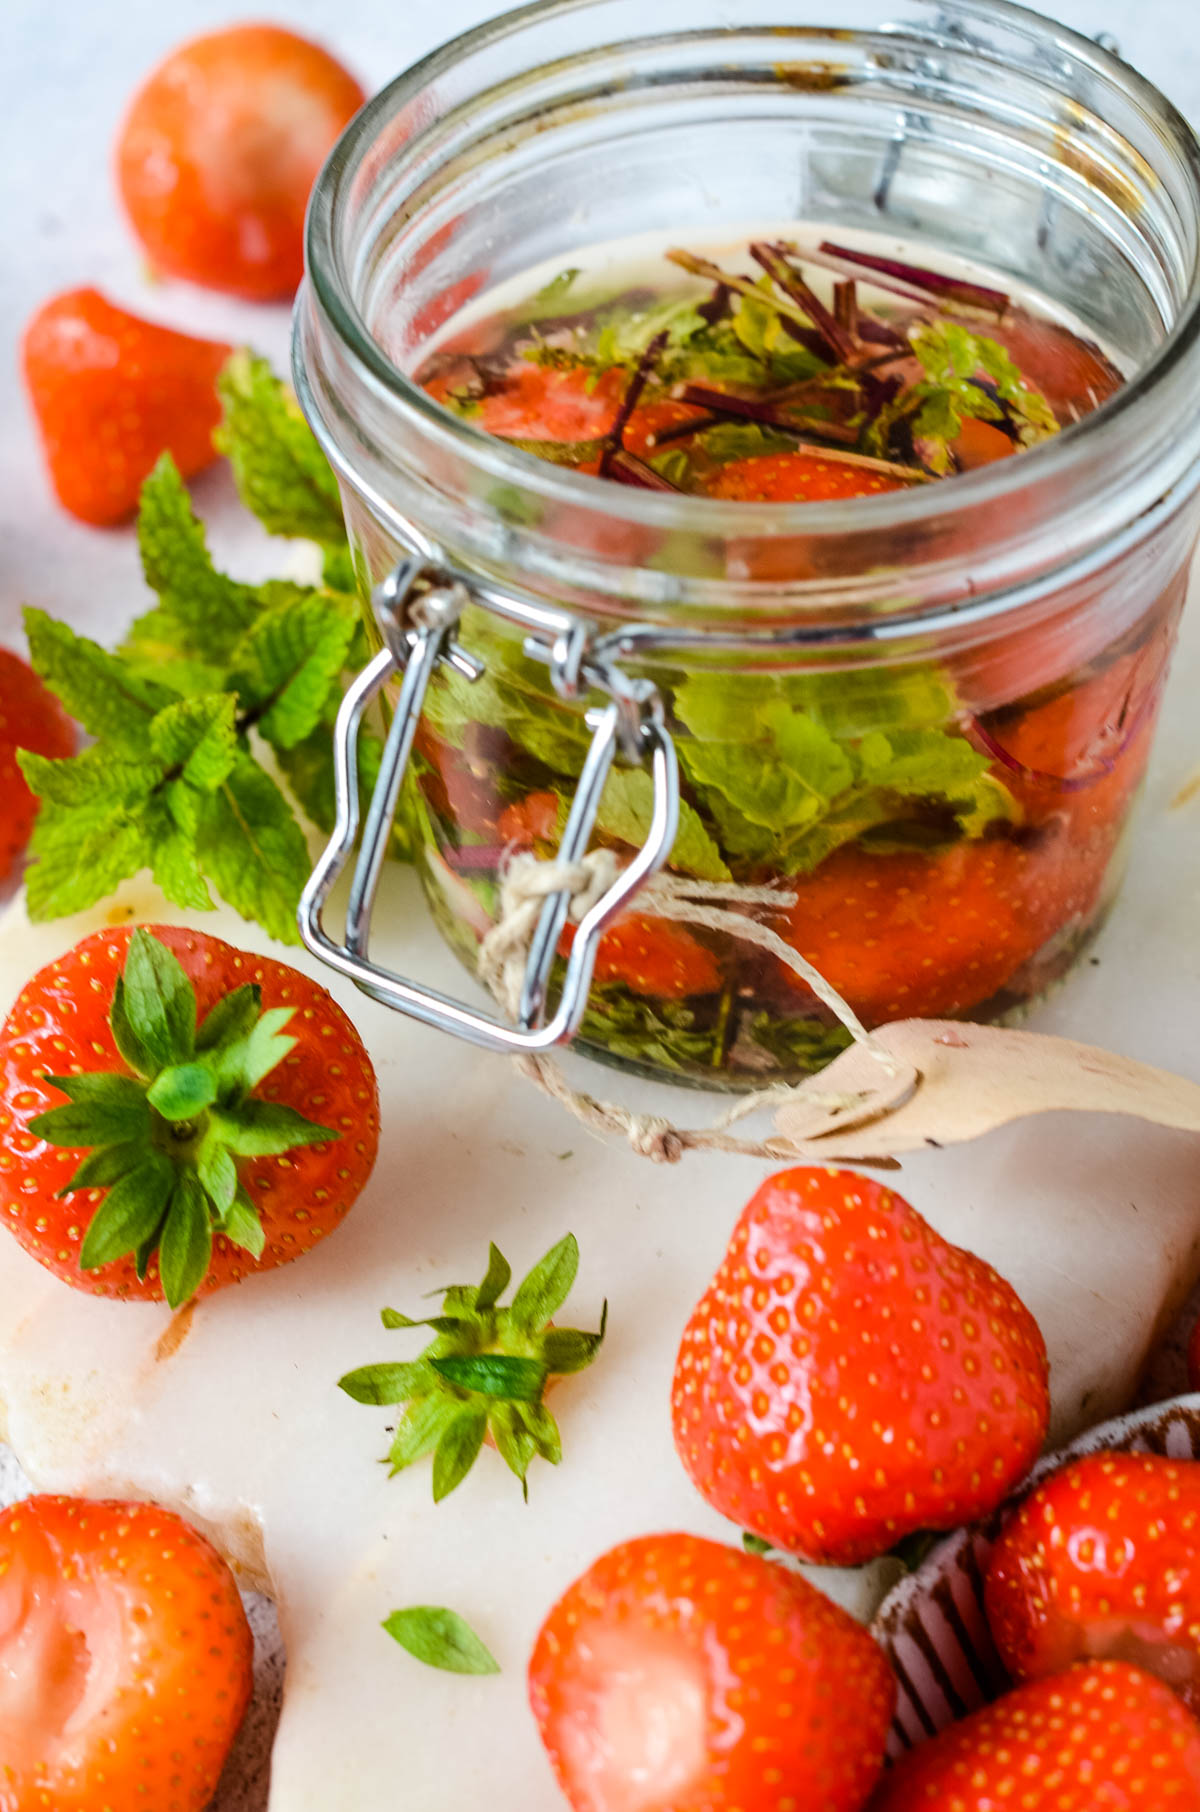 steeping the strawberries and mint in jar with the vinegar